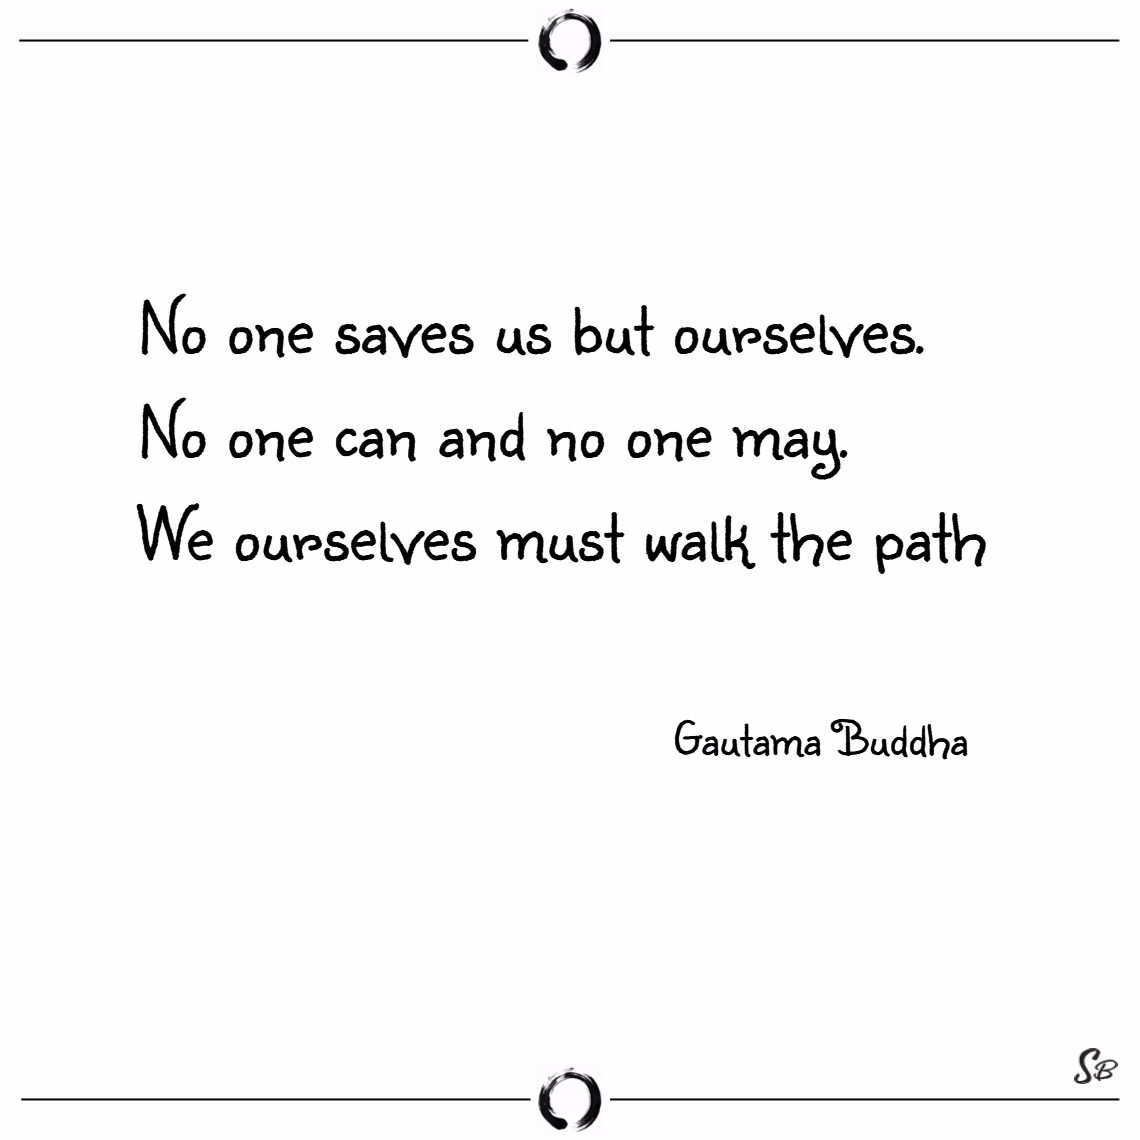 No one saves us but ourselves. no one can and no one may. we ourselves must walk the path. – gautama buddha Buddhism quotes